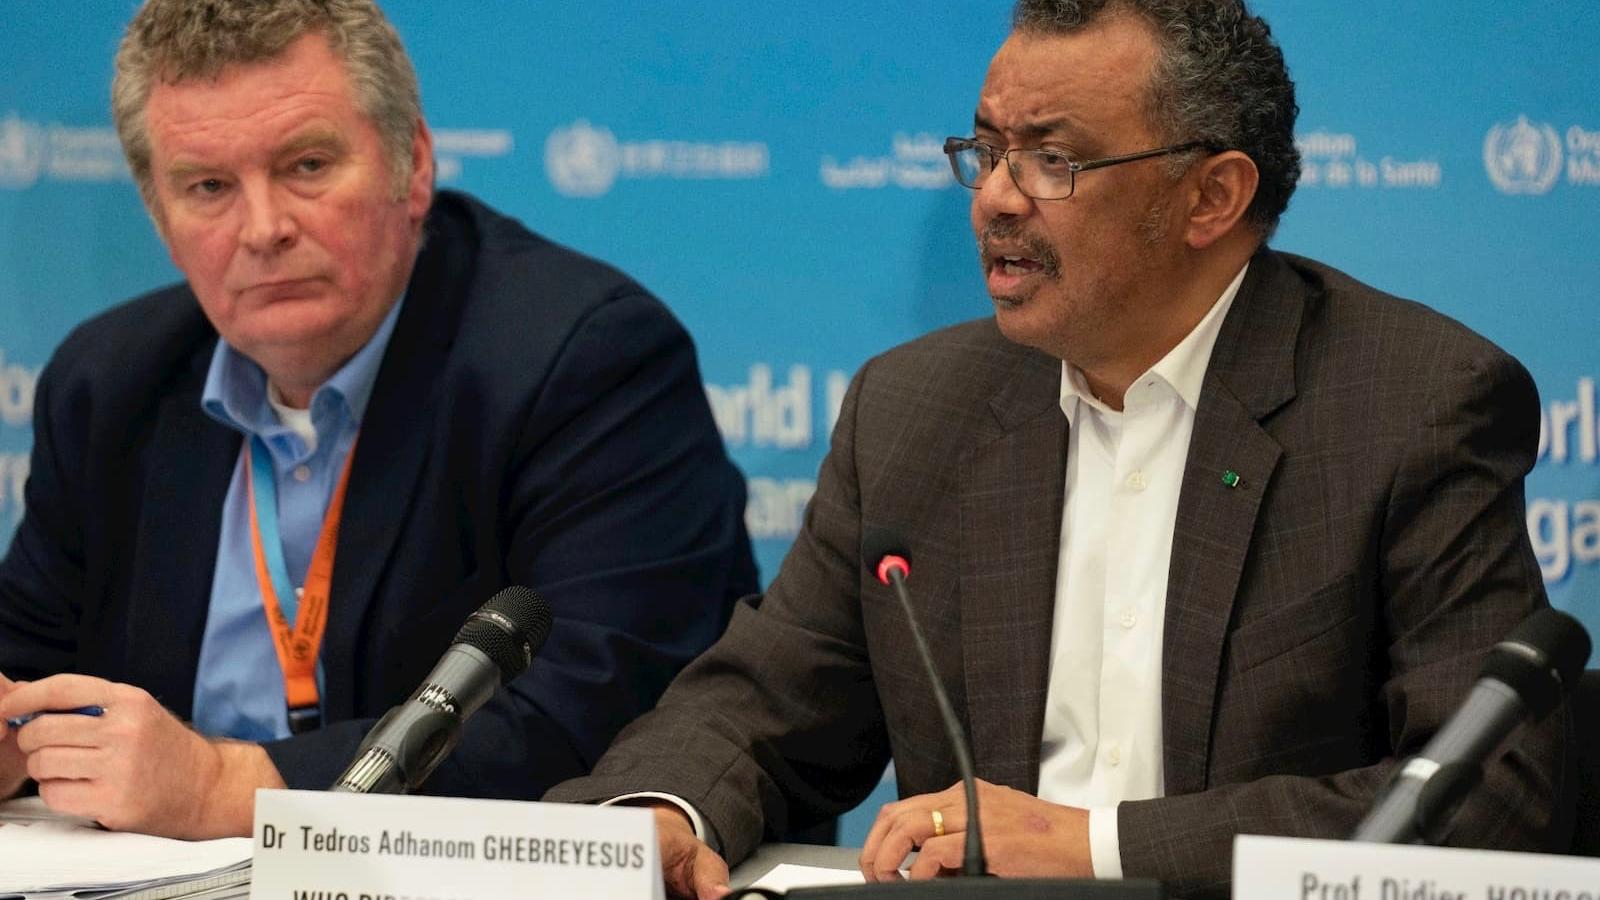 WATCH: WHO declares Coronavirus a global health emergency